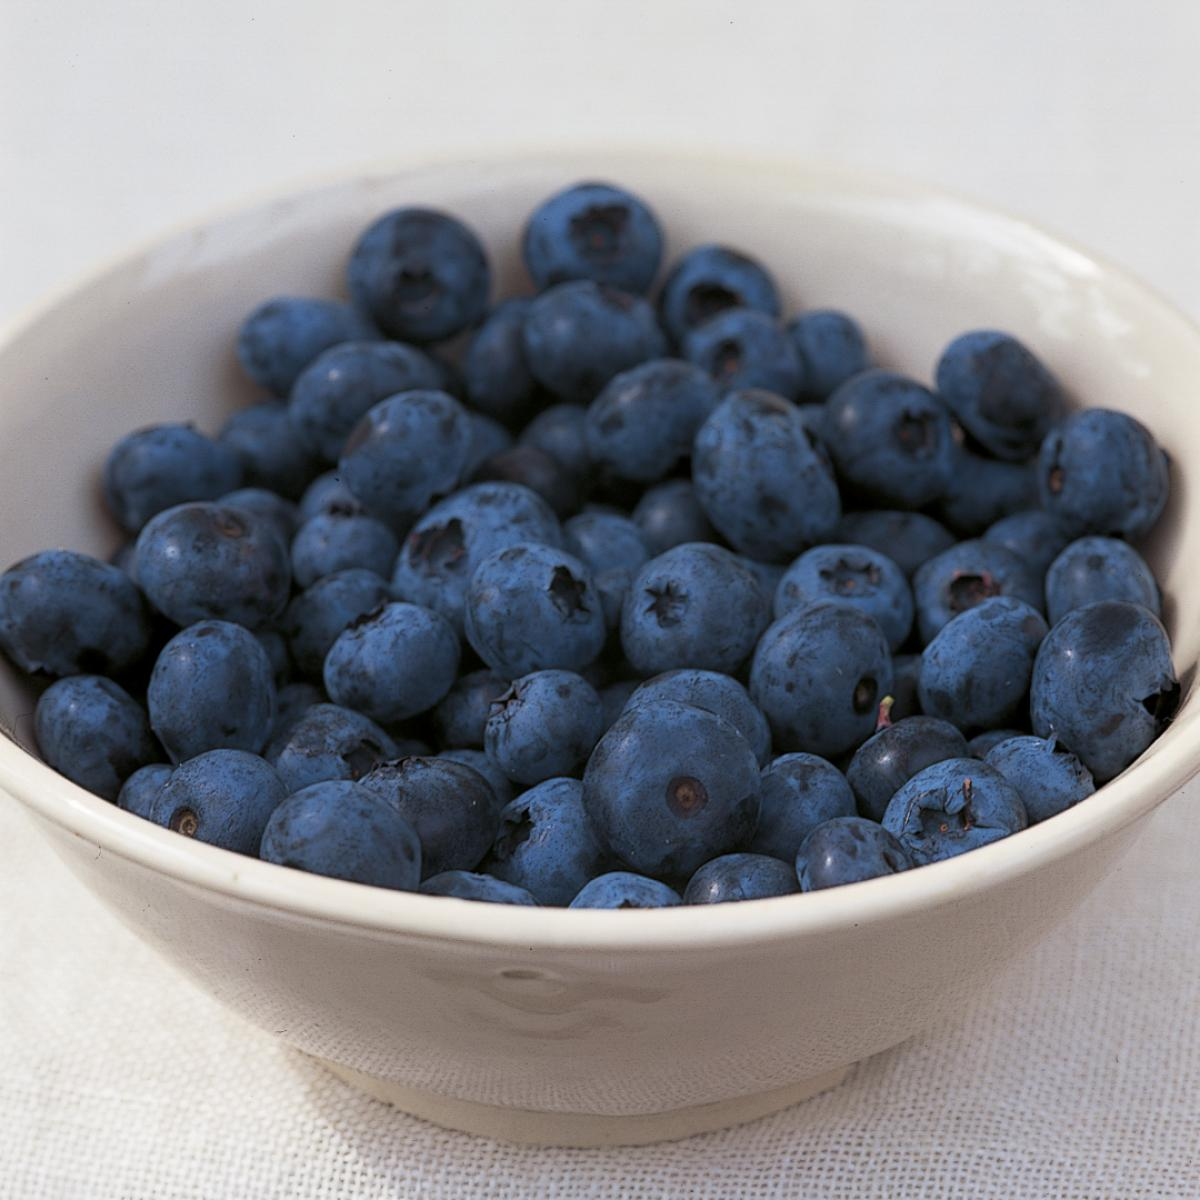 Ingredient htc blueberries